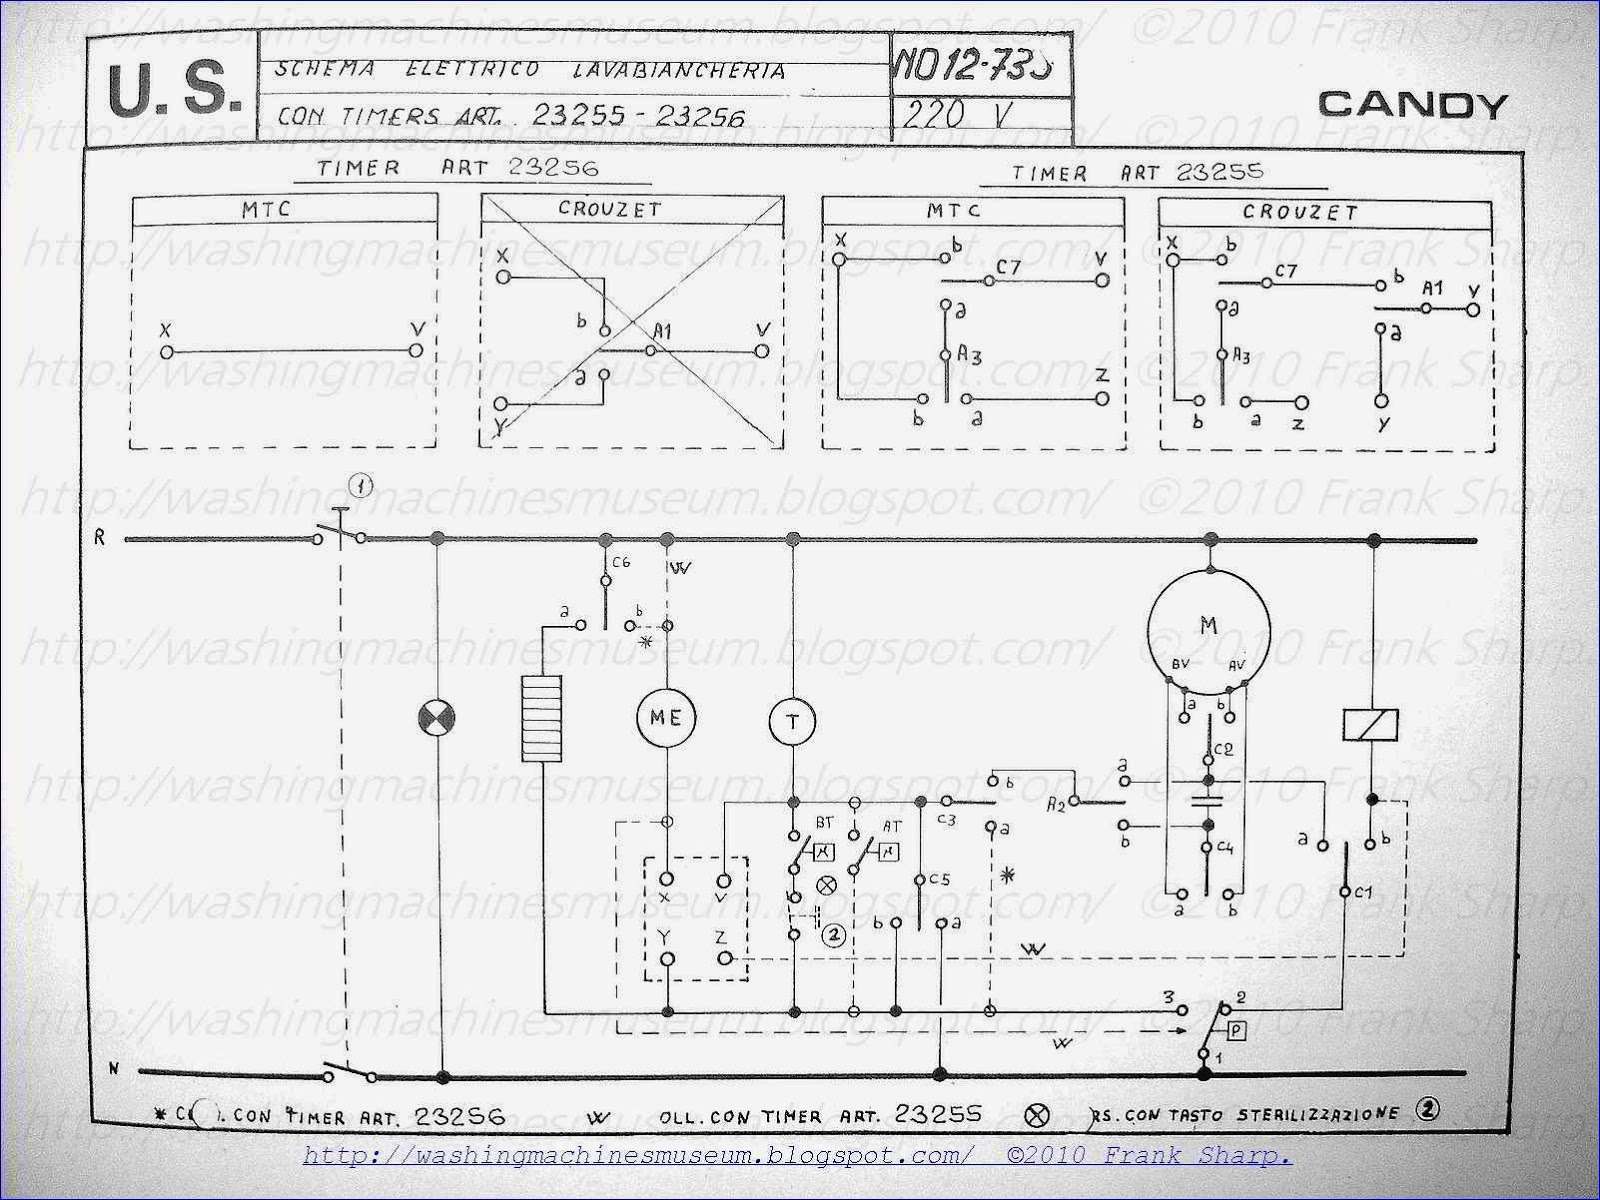 wrg 2262] washing machine motor wiring diagwiring diagram of washing machine motor wiring diagramwasher rama museum candy washing machine with timer 23255